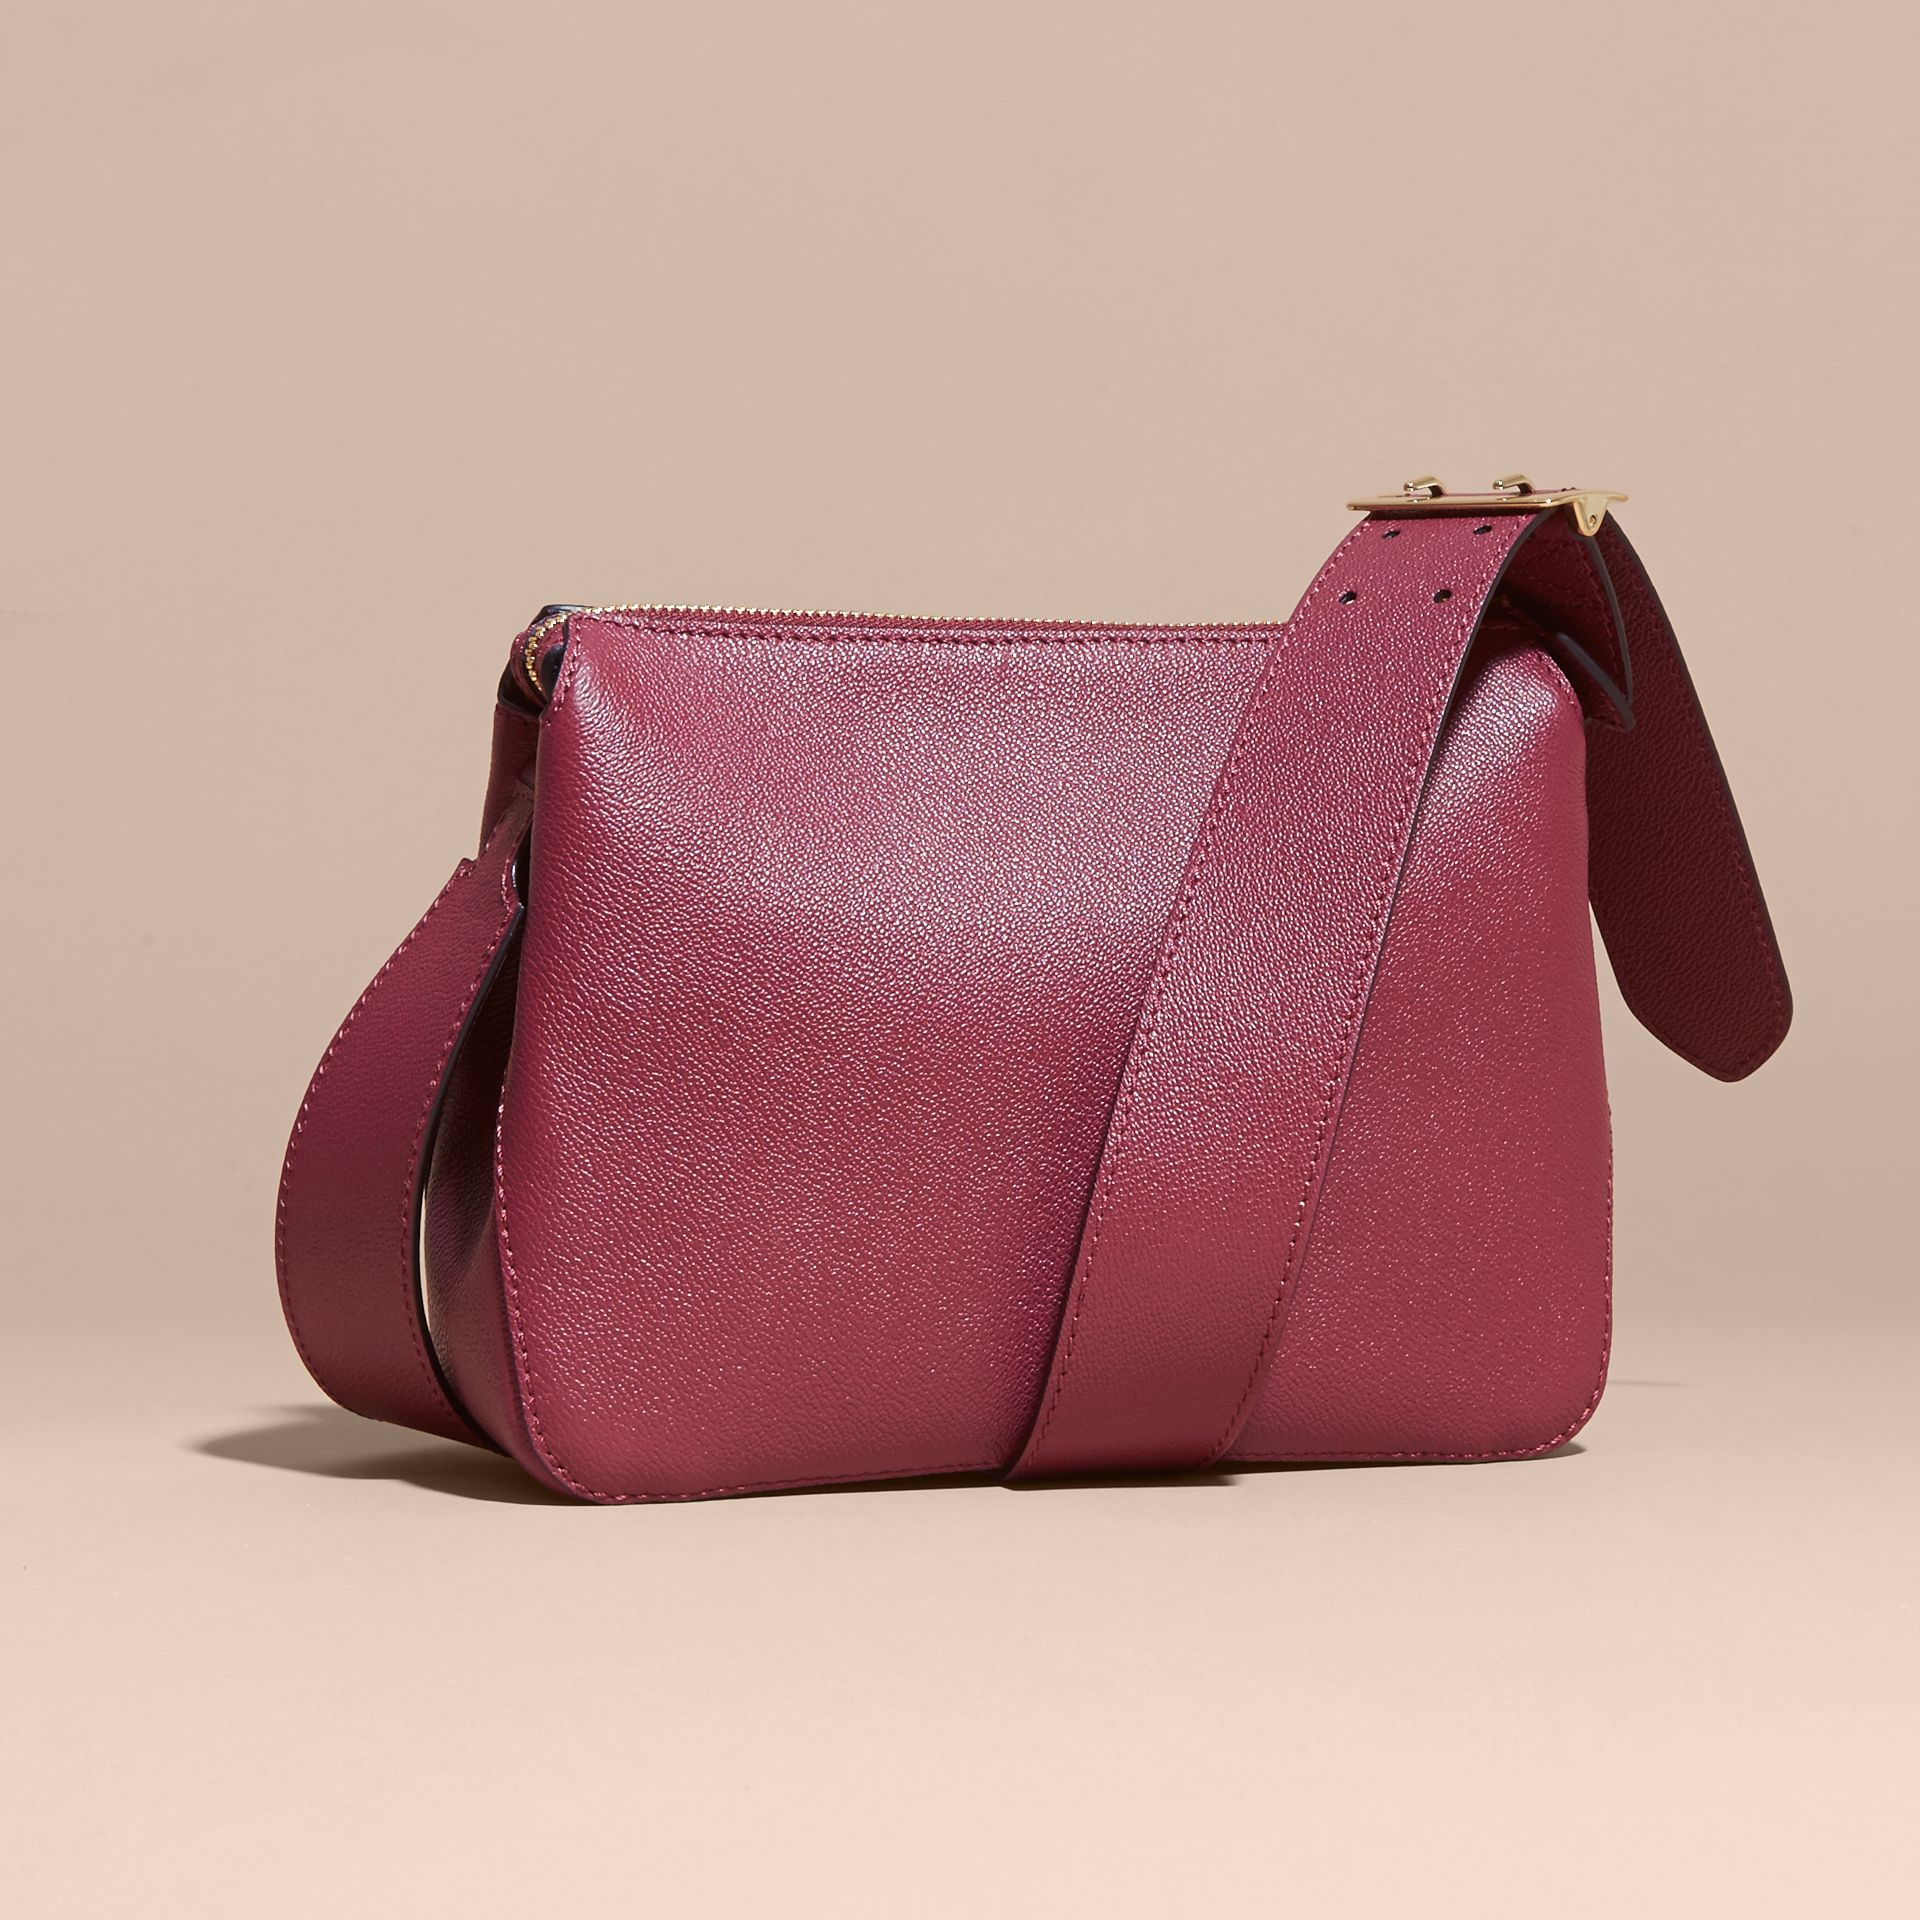 Buckle Detail Leather Crossbody Bag in Dark Plum - gallery image 3